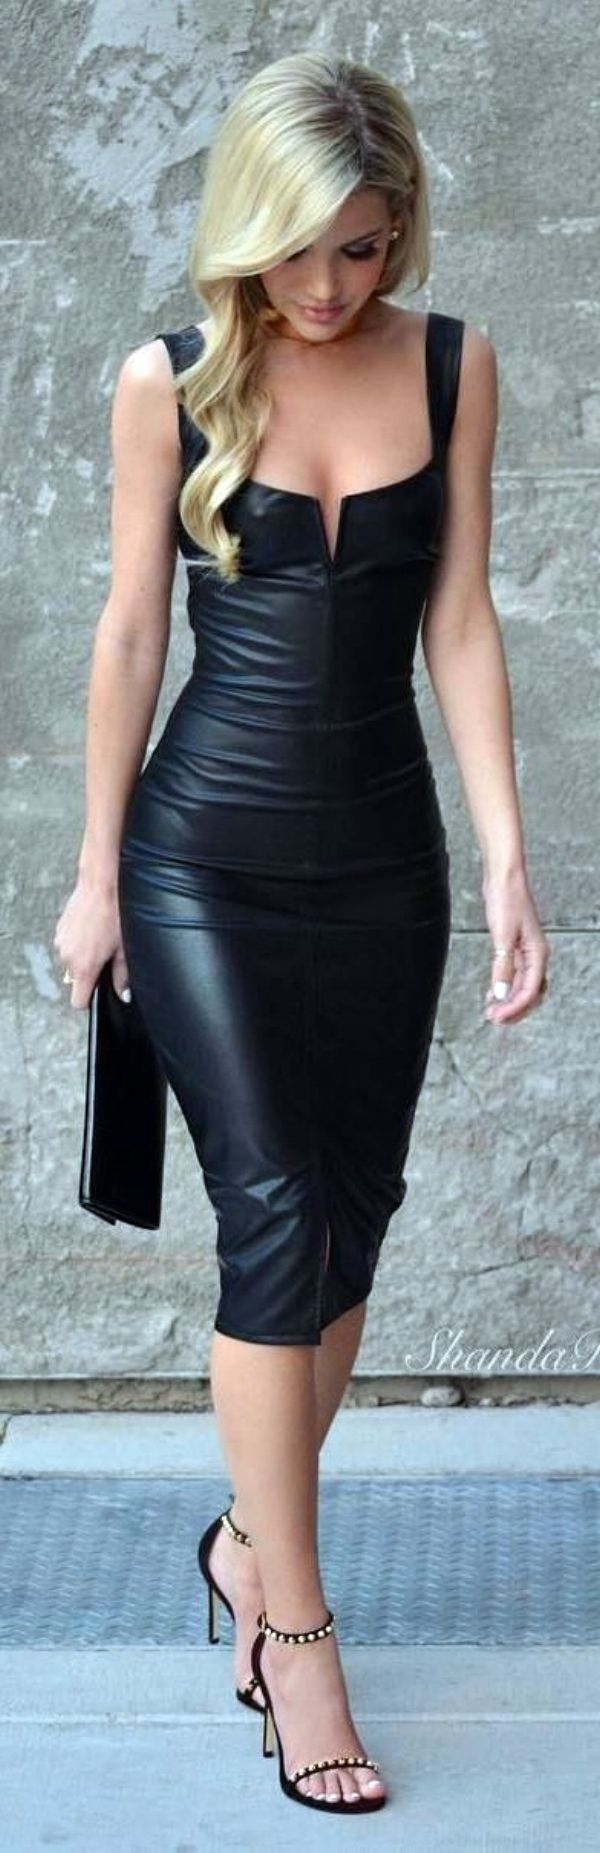 Blogger Shandra Rogers tight leath black dress.